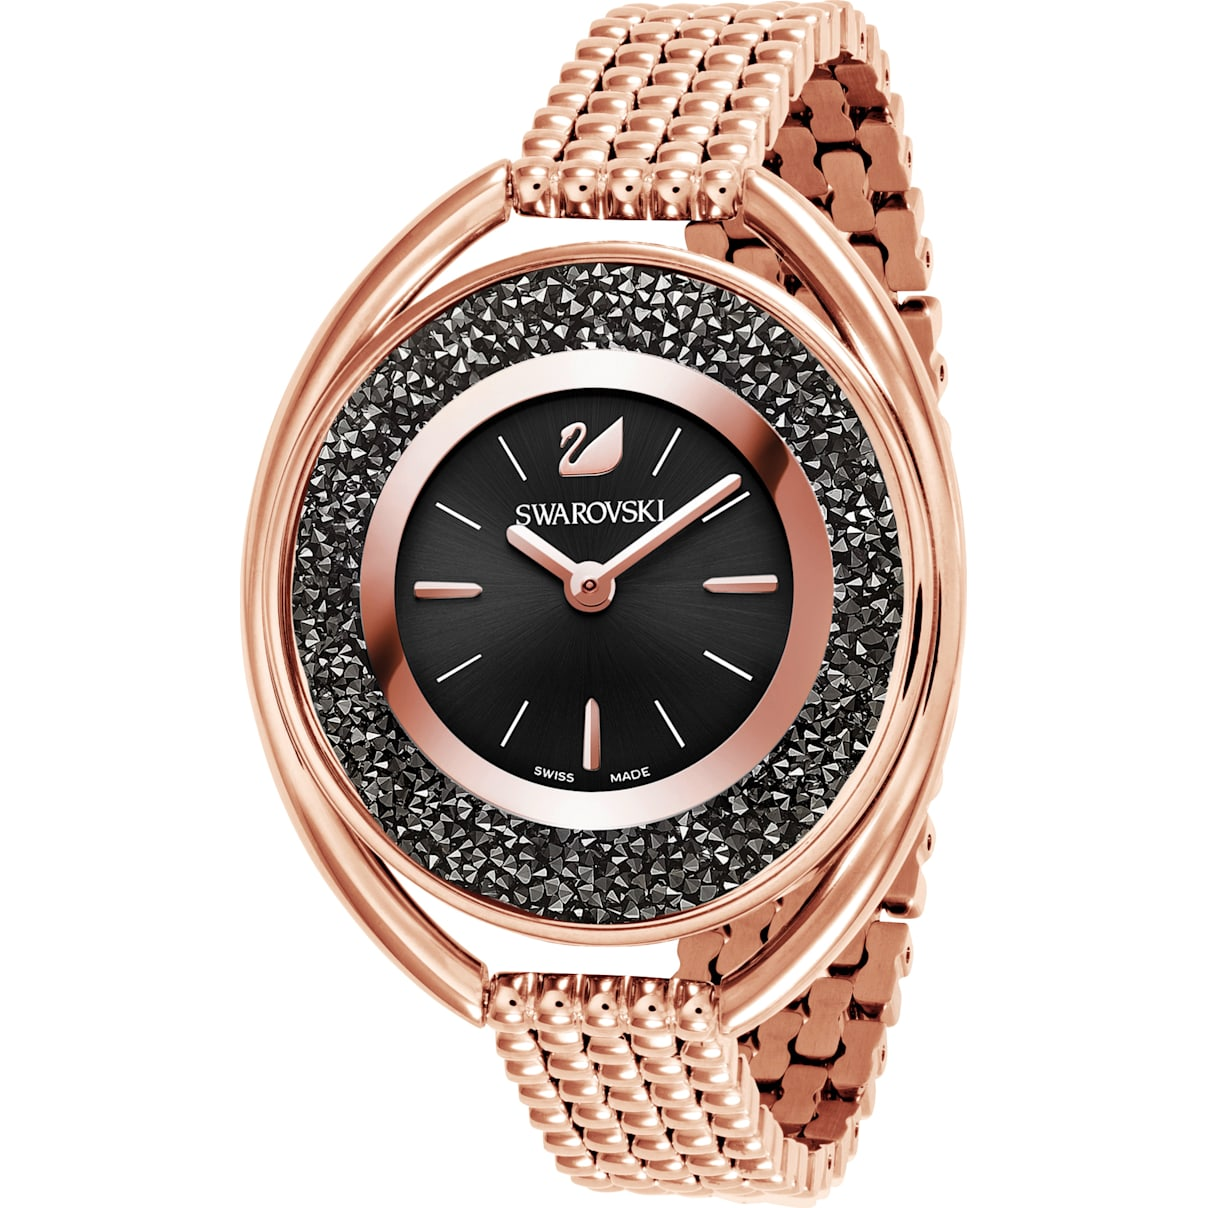 Swarovski Crystalline Oval Watch, Metal bracelet, Black, Rose-gold tone PVD